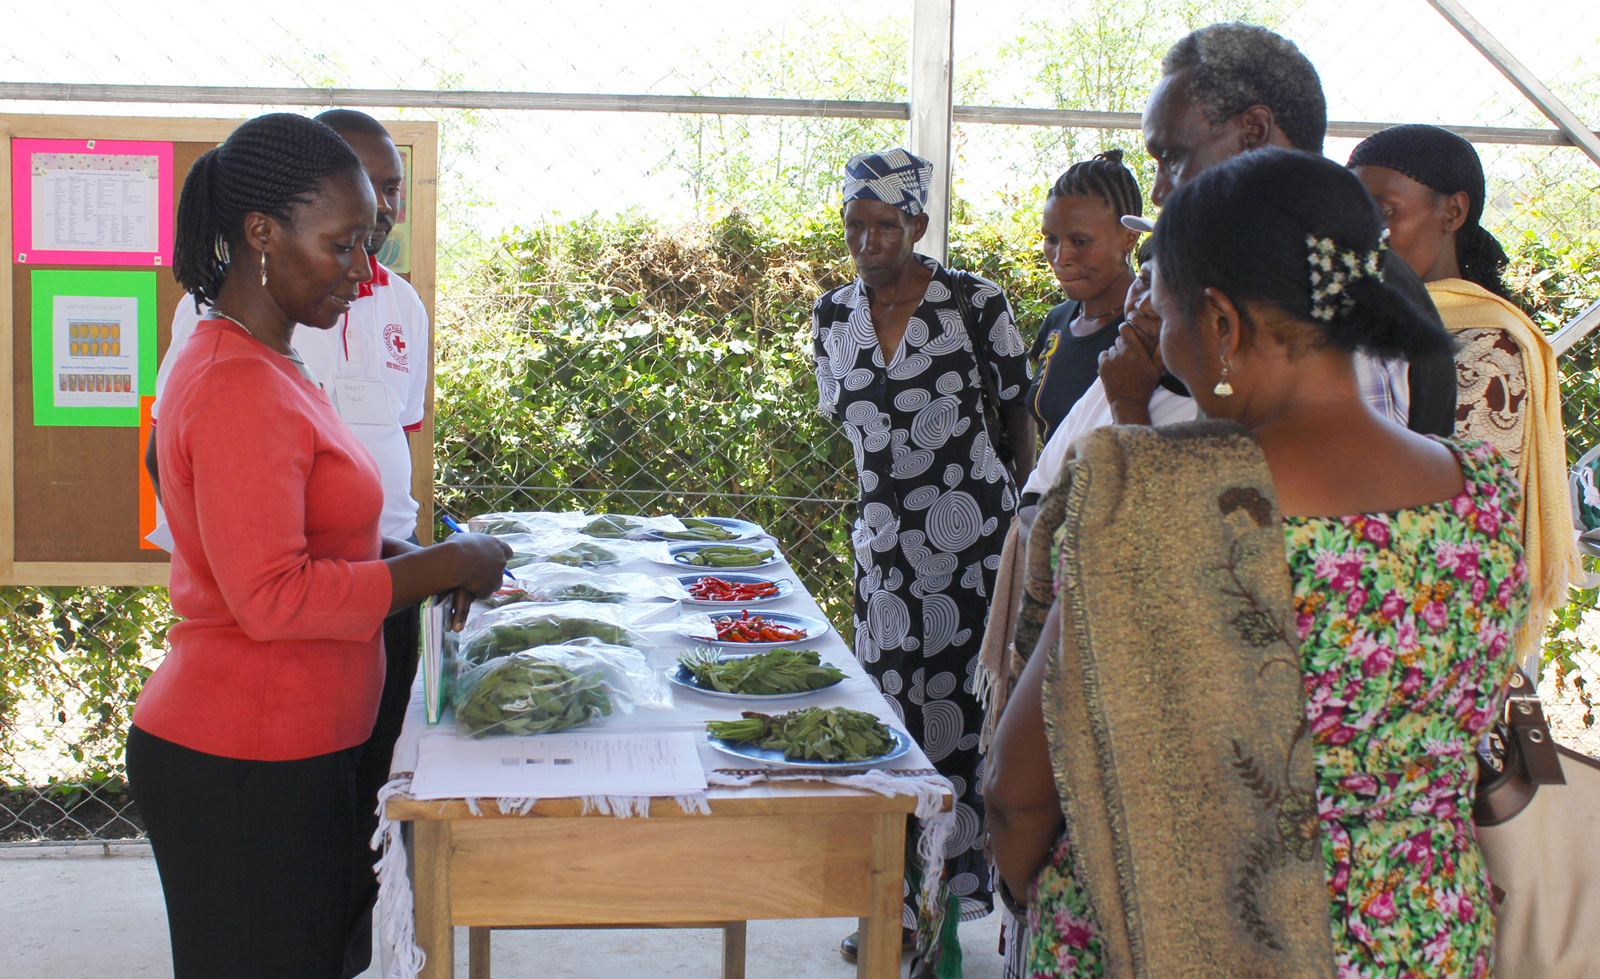 Woman leads a discussion over a table of vegetables on plates and in bags with a group of farmers who are listening